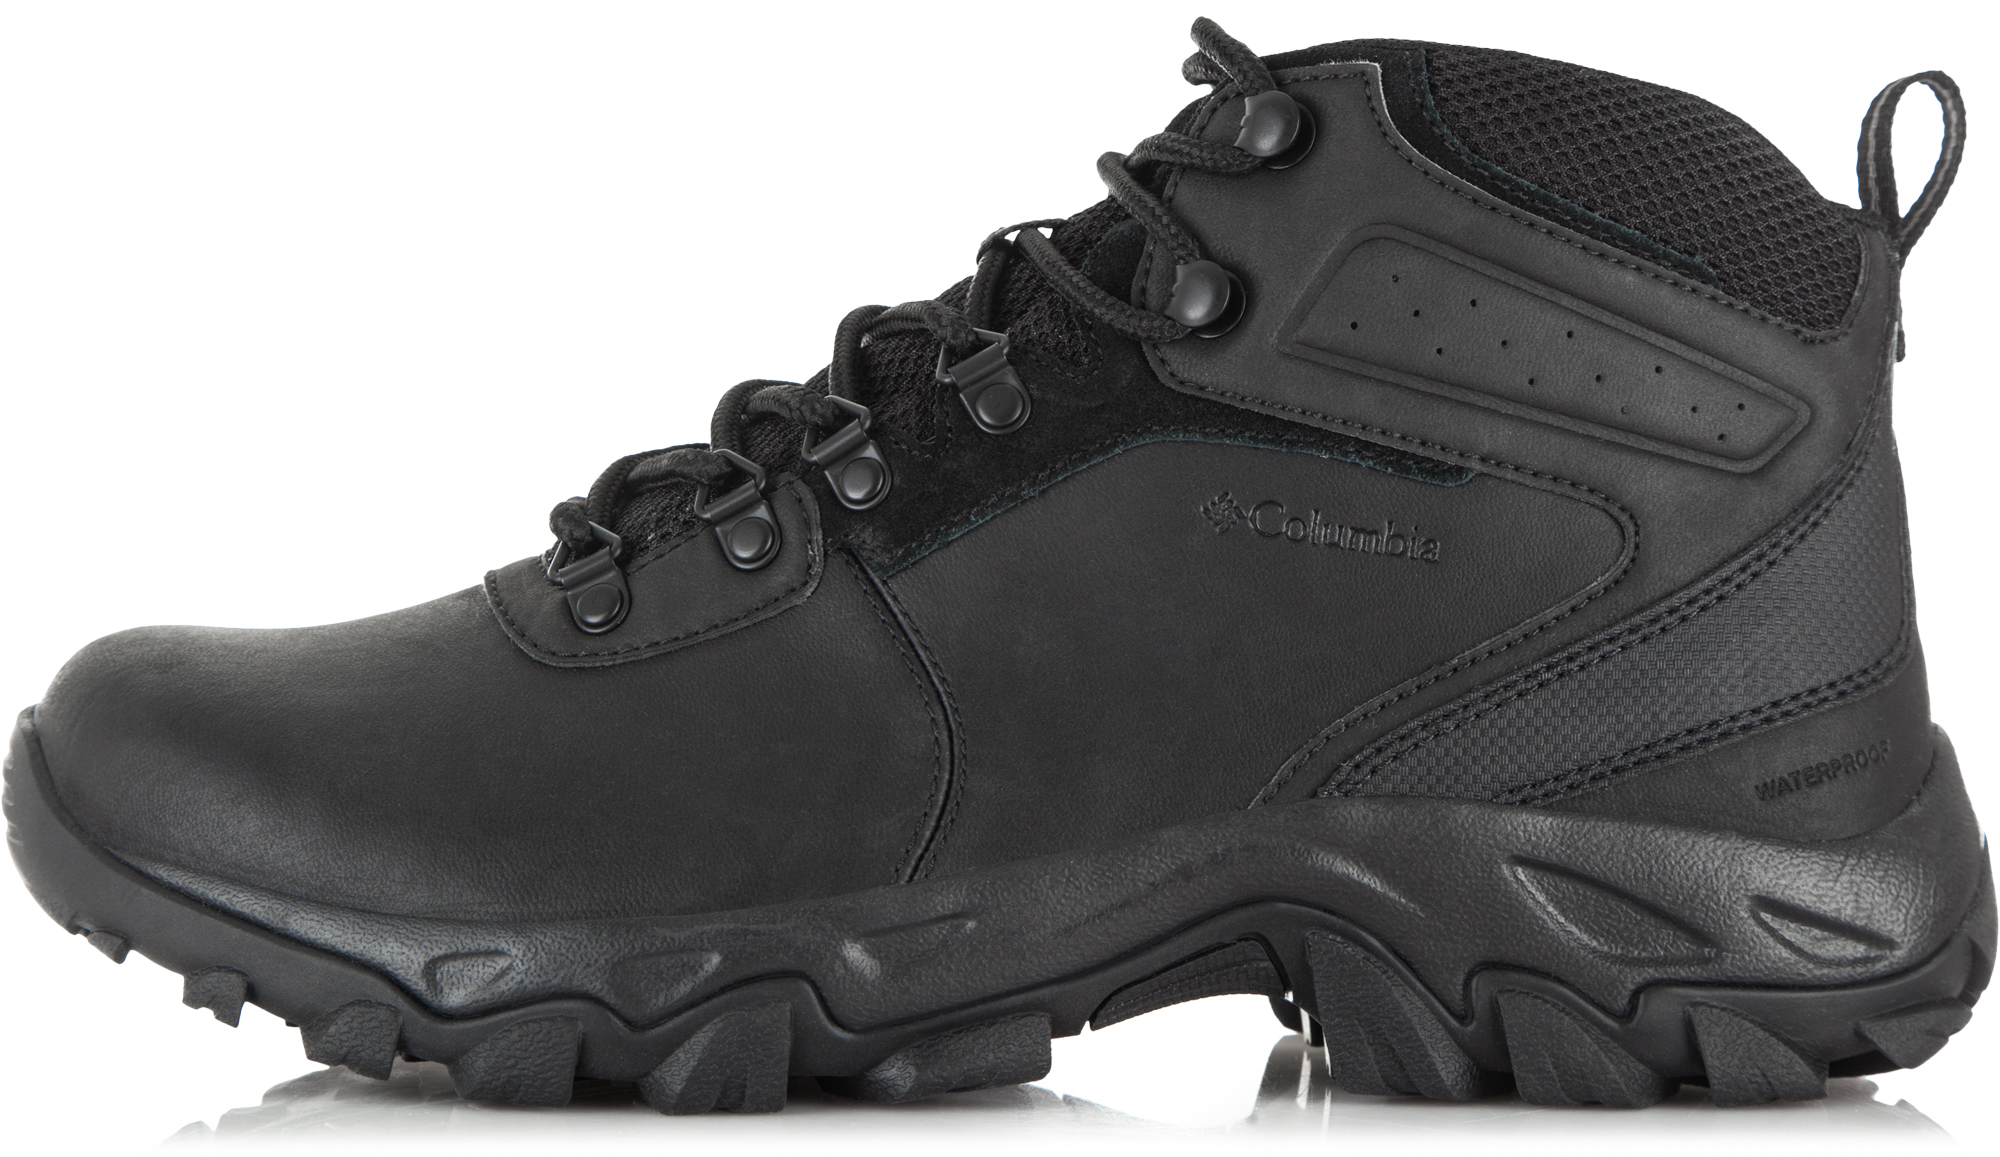 Columbia Ботинки мужские Columbia Newton Ridge Plus II Waterproof, размер 45 columbia брюки женские columbia silver ridge pull on